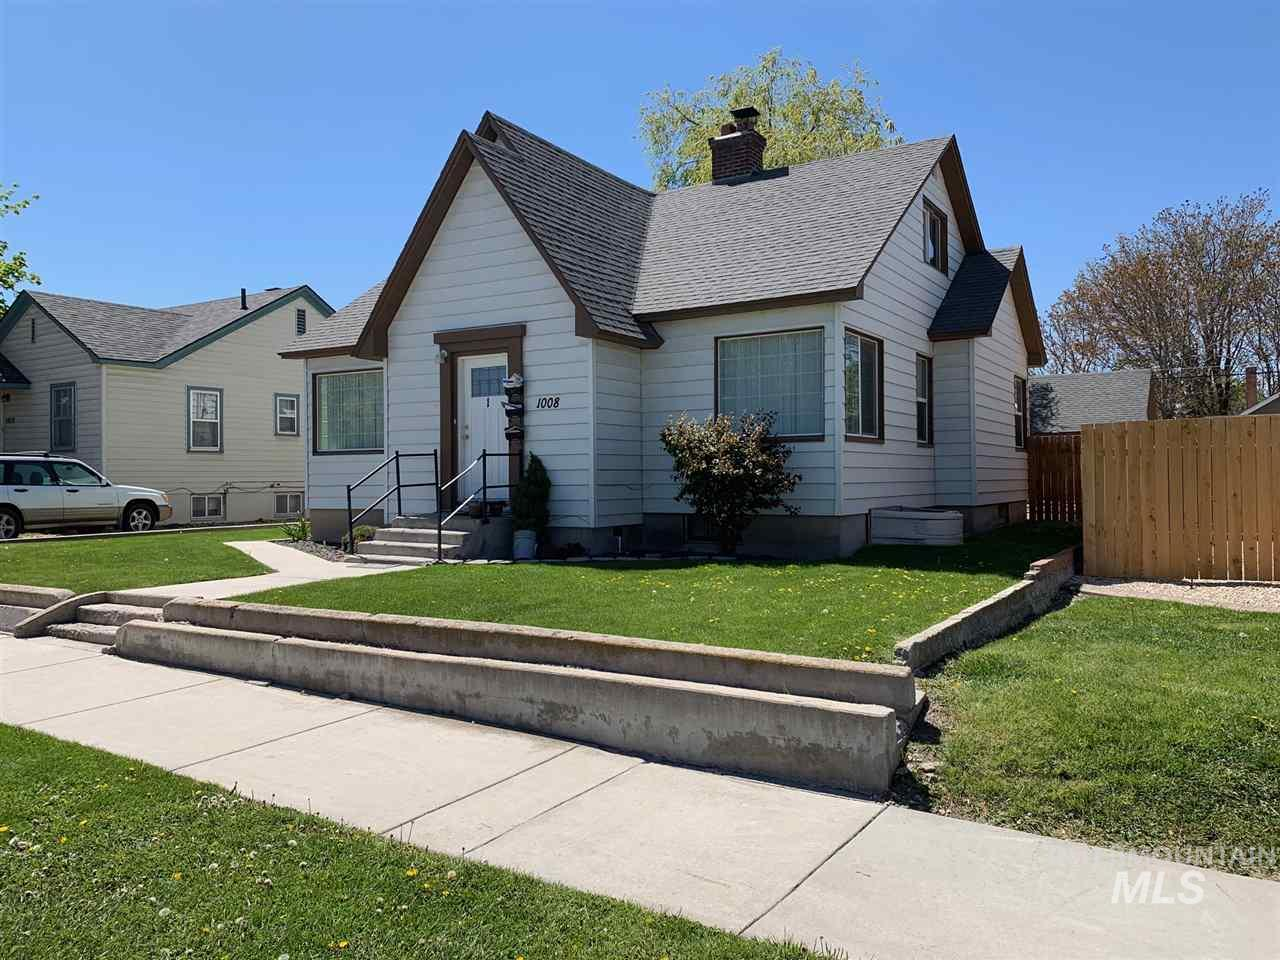 1008 Everett, Caldwell, Idaho 83605, 2 Bedrooms, 1.5 Bathrooms, Residential Income For Sale, Price $335,000, 98727703